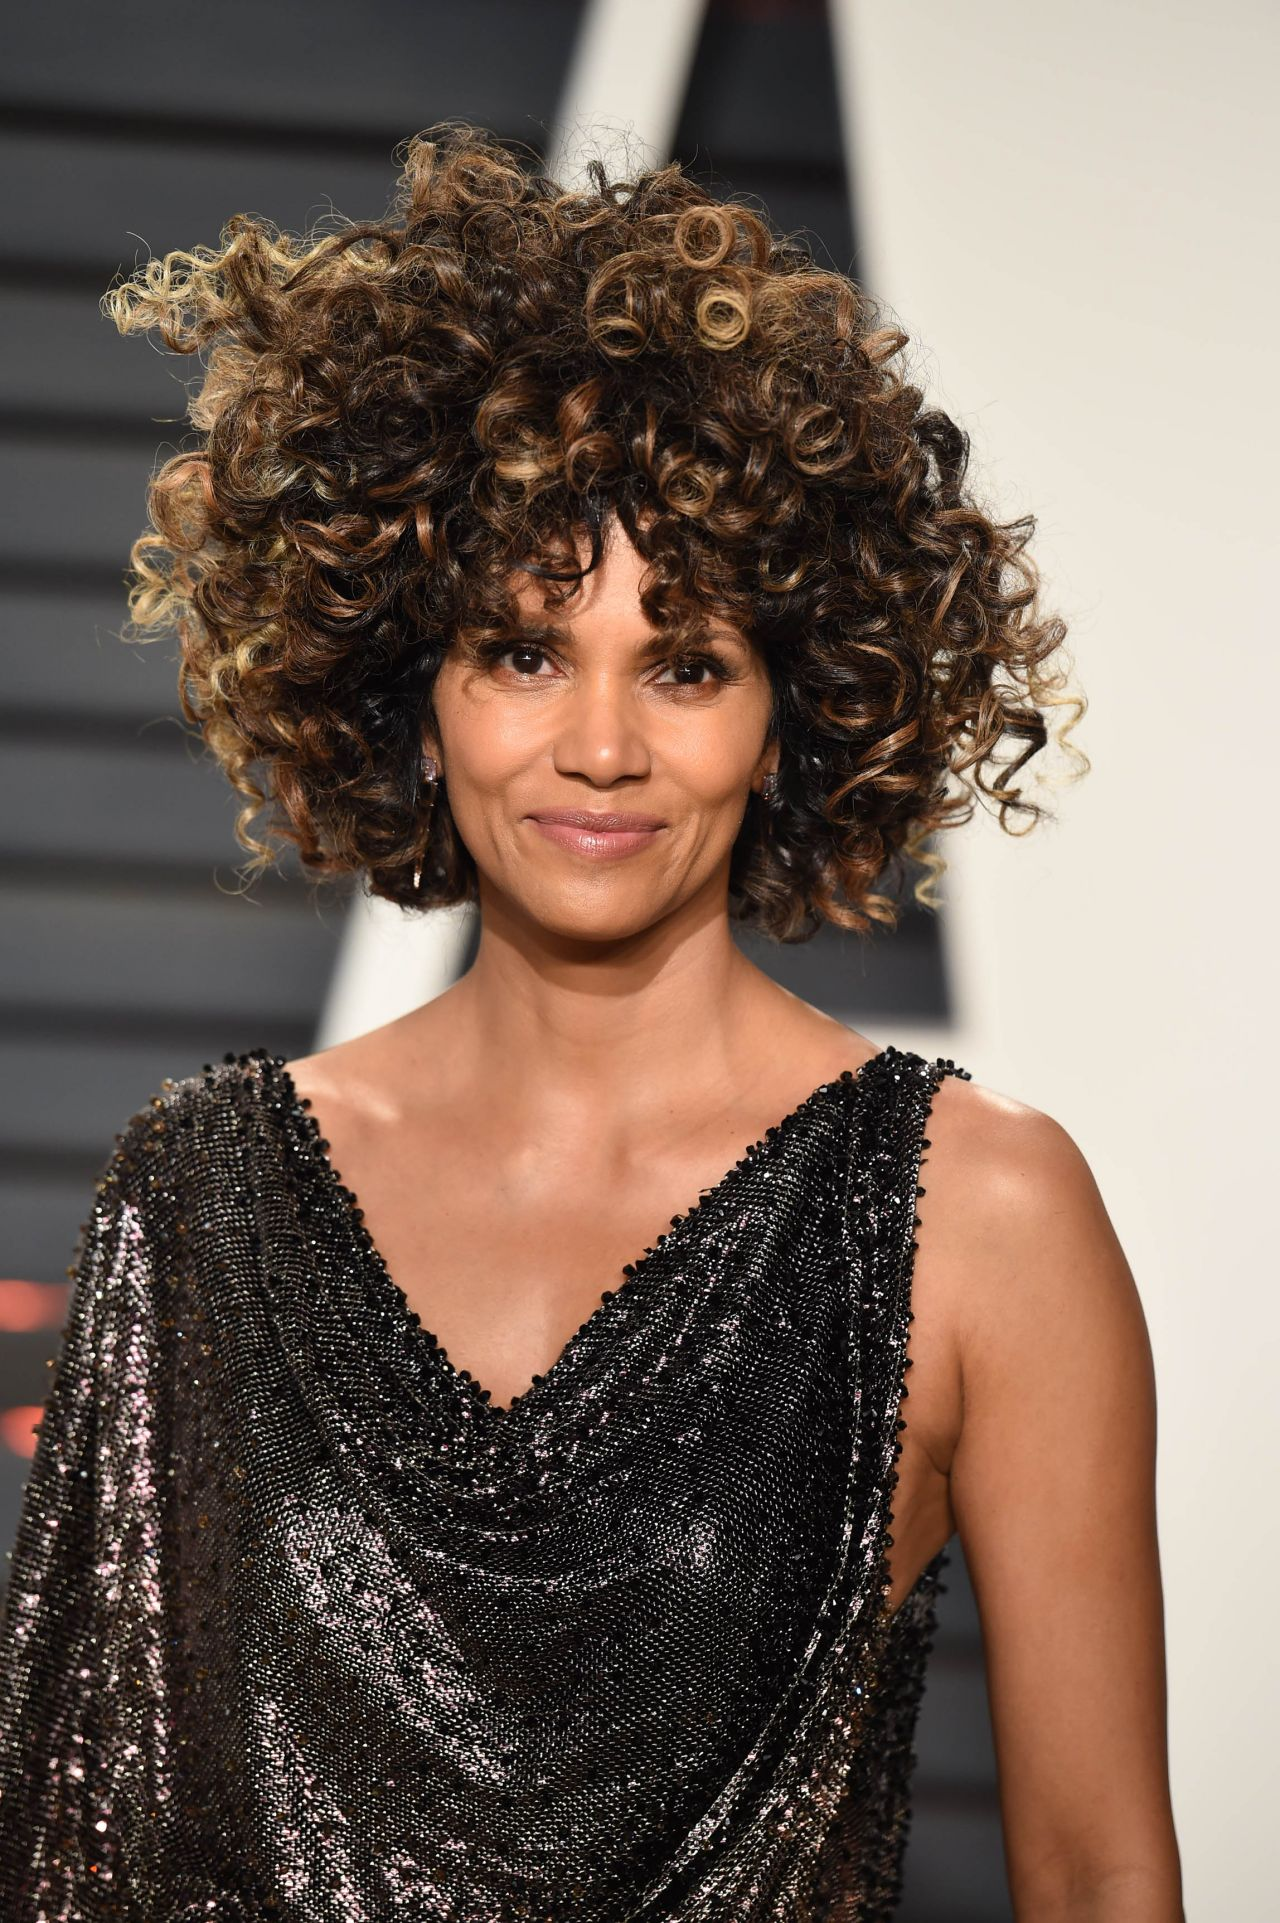 Halle Berry At Vanity Fair Oscar 2017 Party In Los Angeles